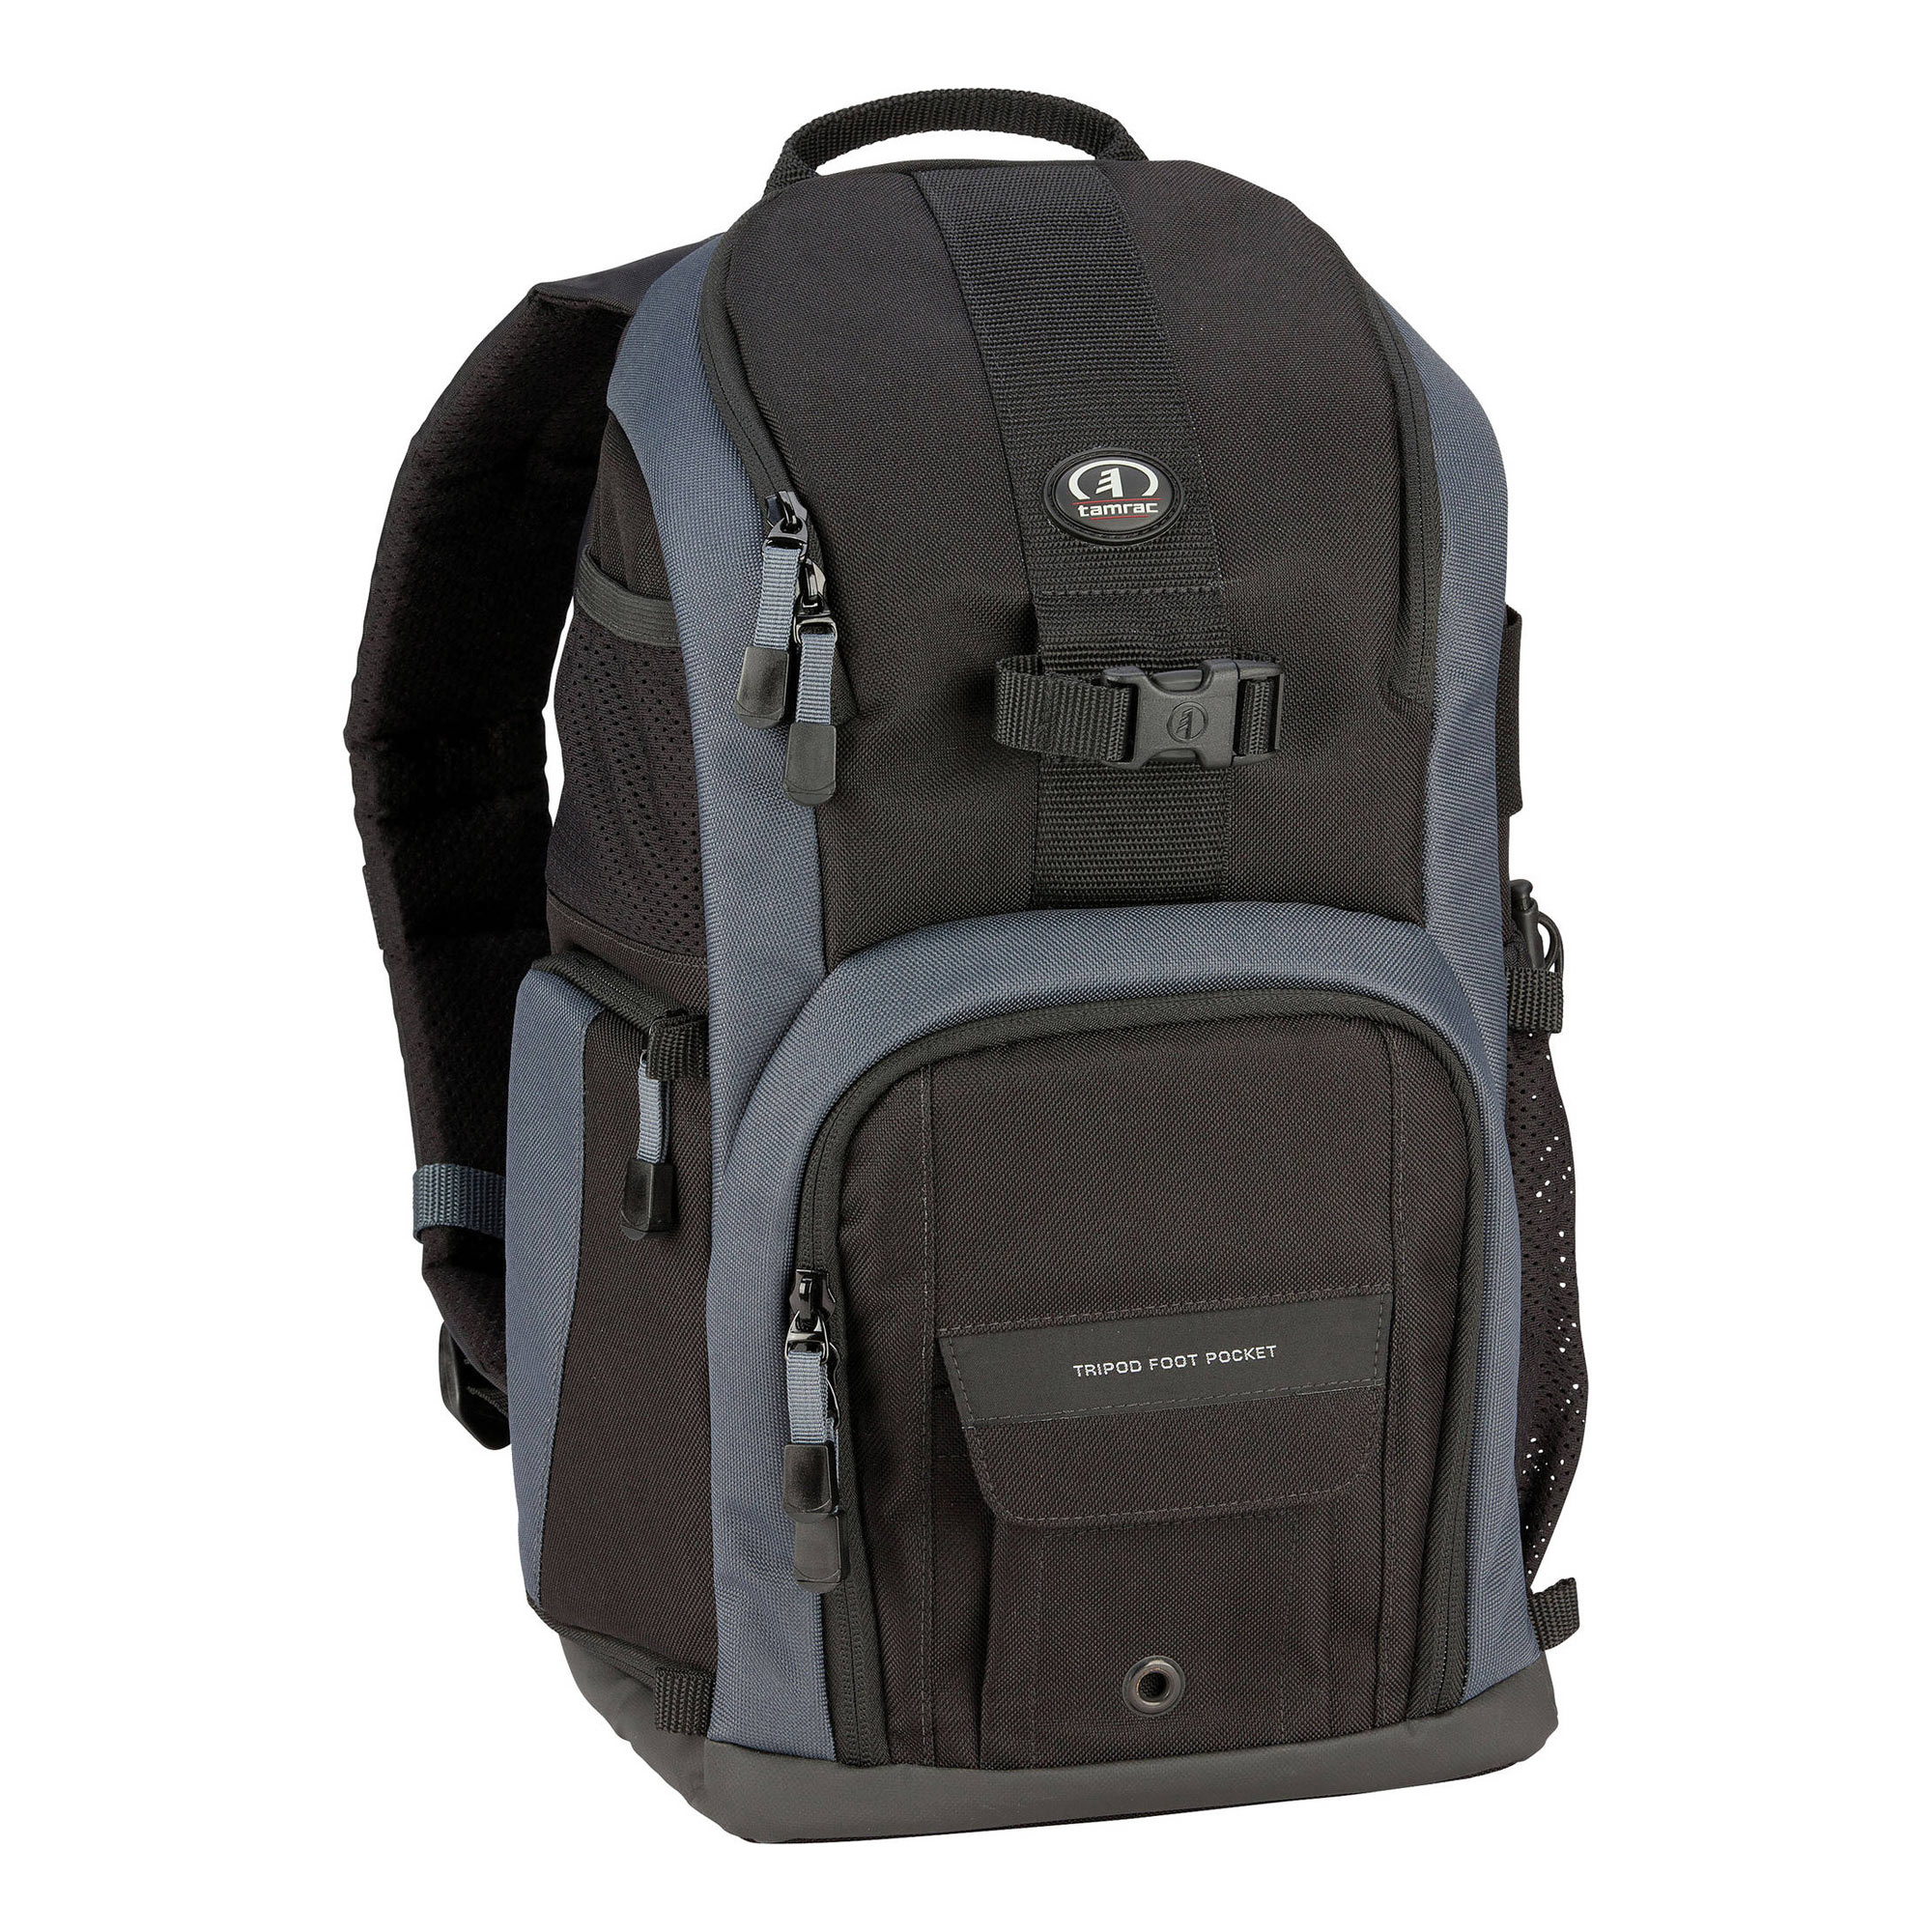 Mirage 6 Photo/Tablet Backpack (Black/Gray)